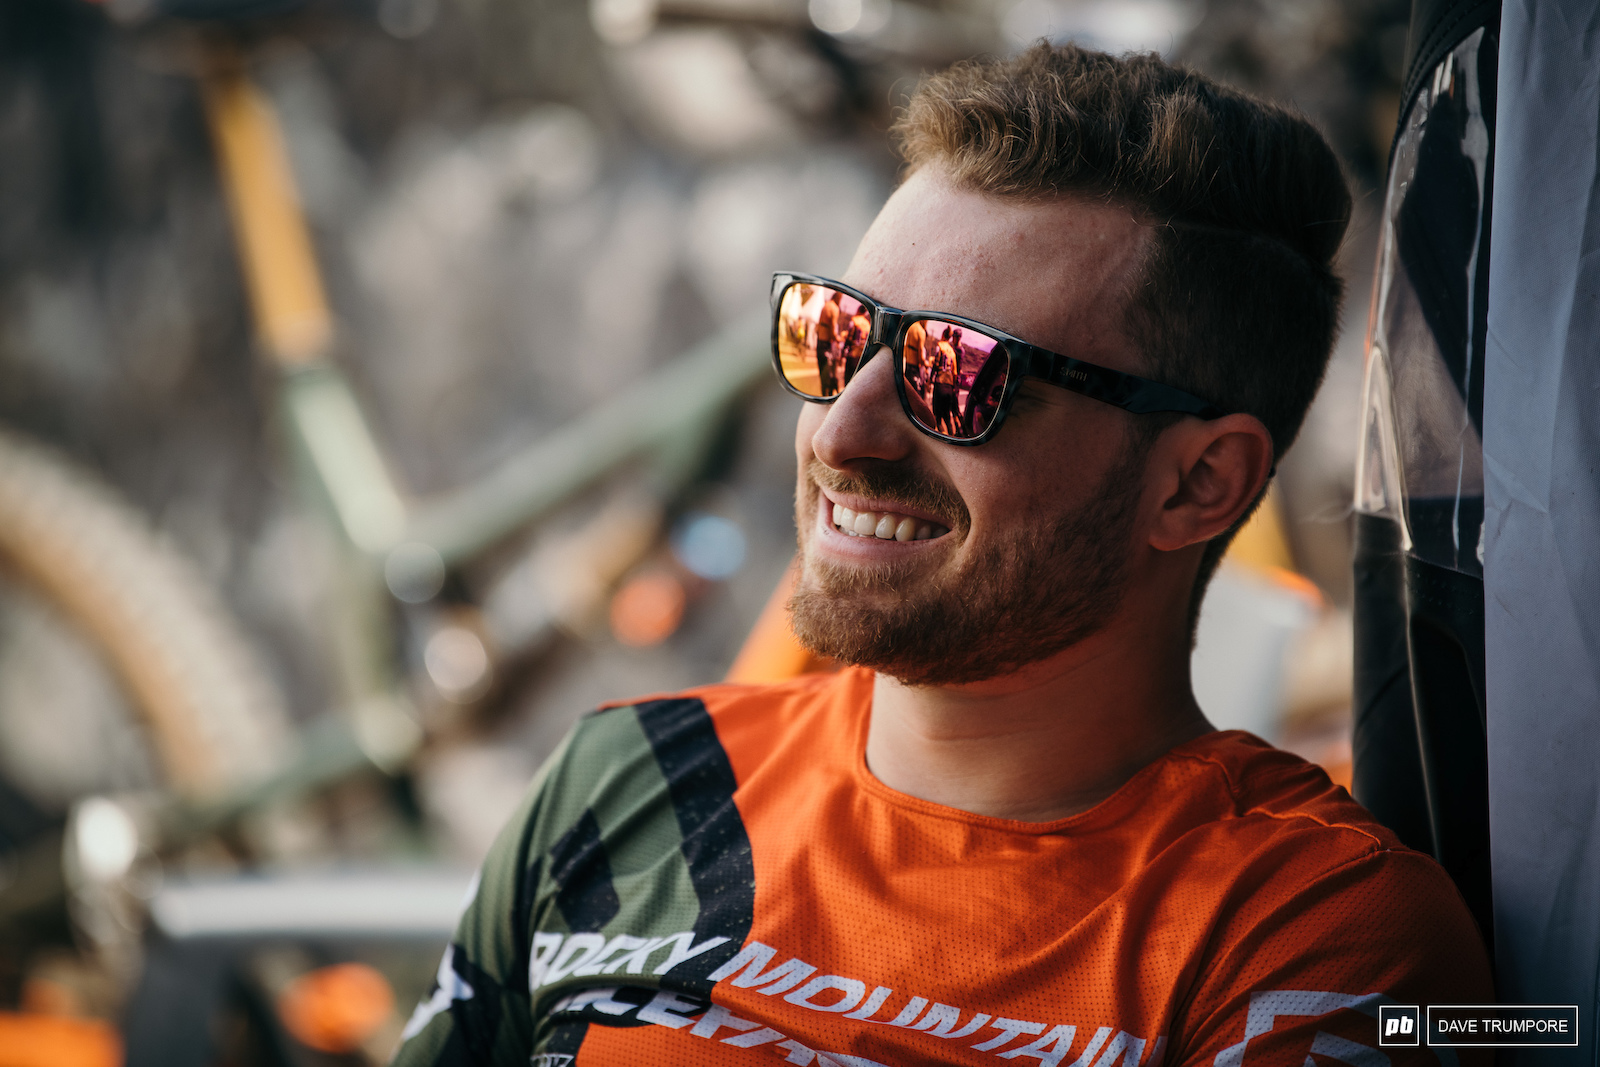 The last time the EWS came to Madeira Jesse Melamed was the man to beat before a mechanical ended his race. He will carry that confidence into the weekend to challenge the dominance of Martin Maes.